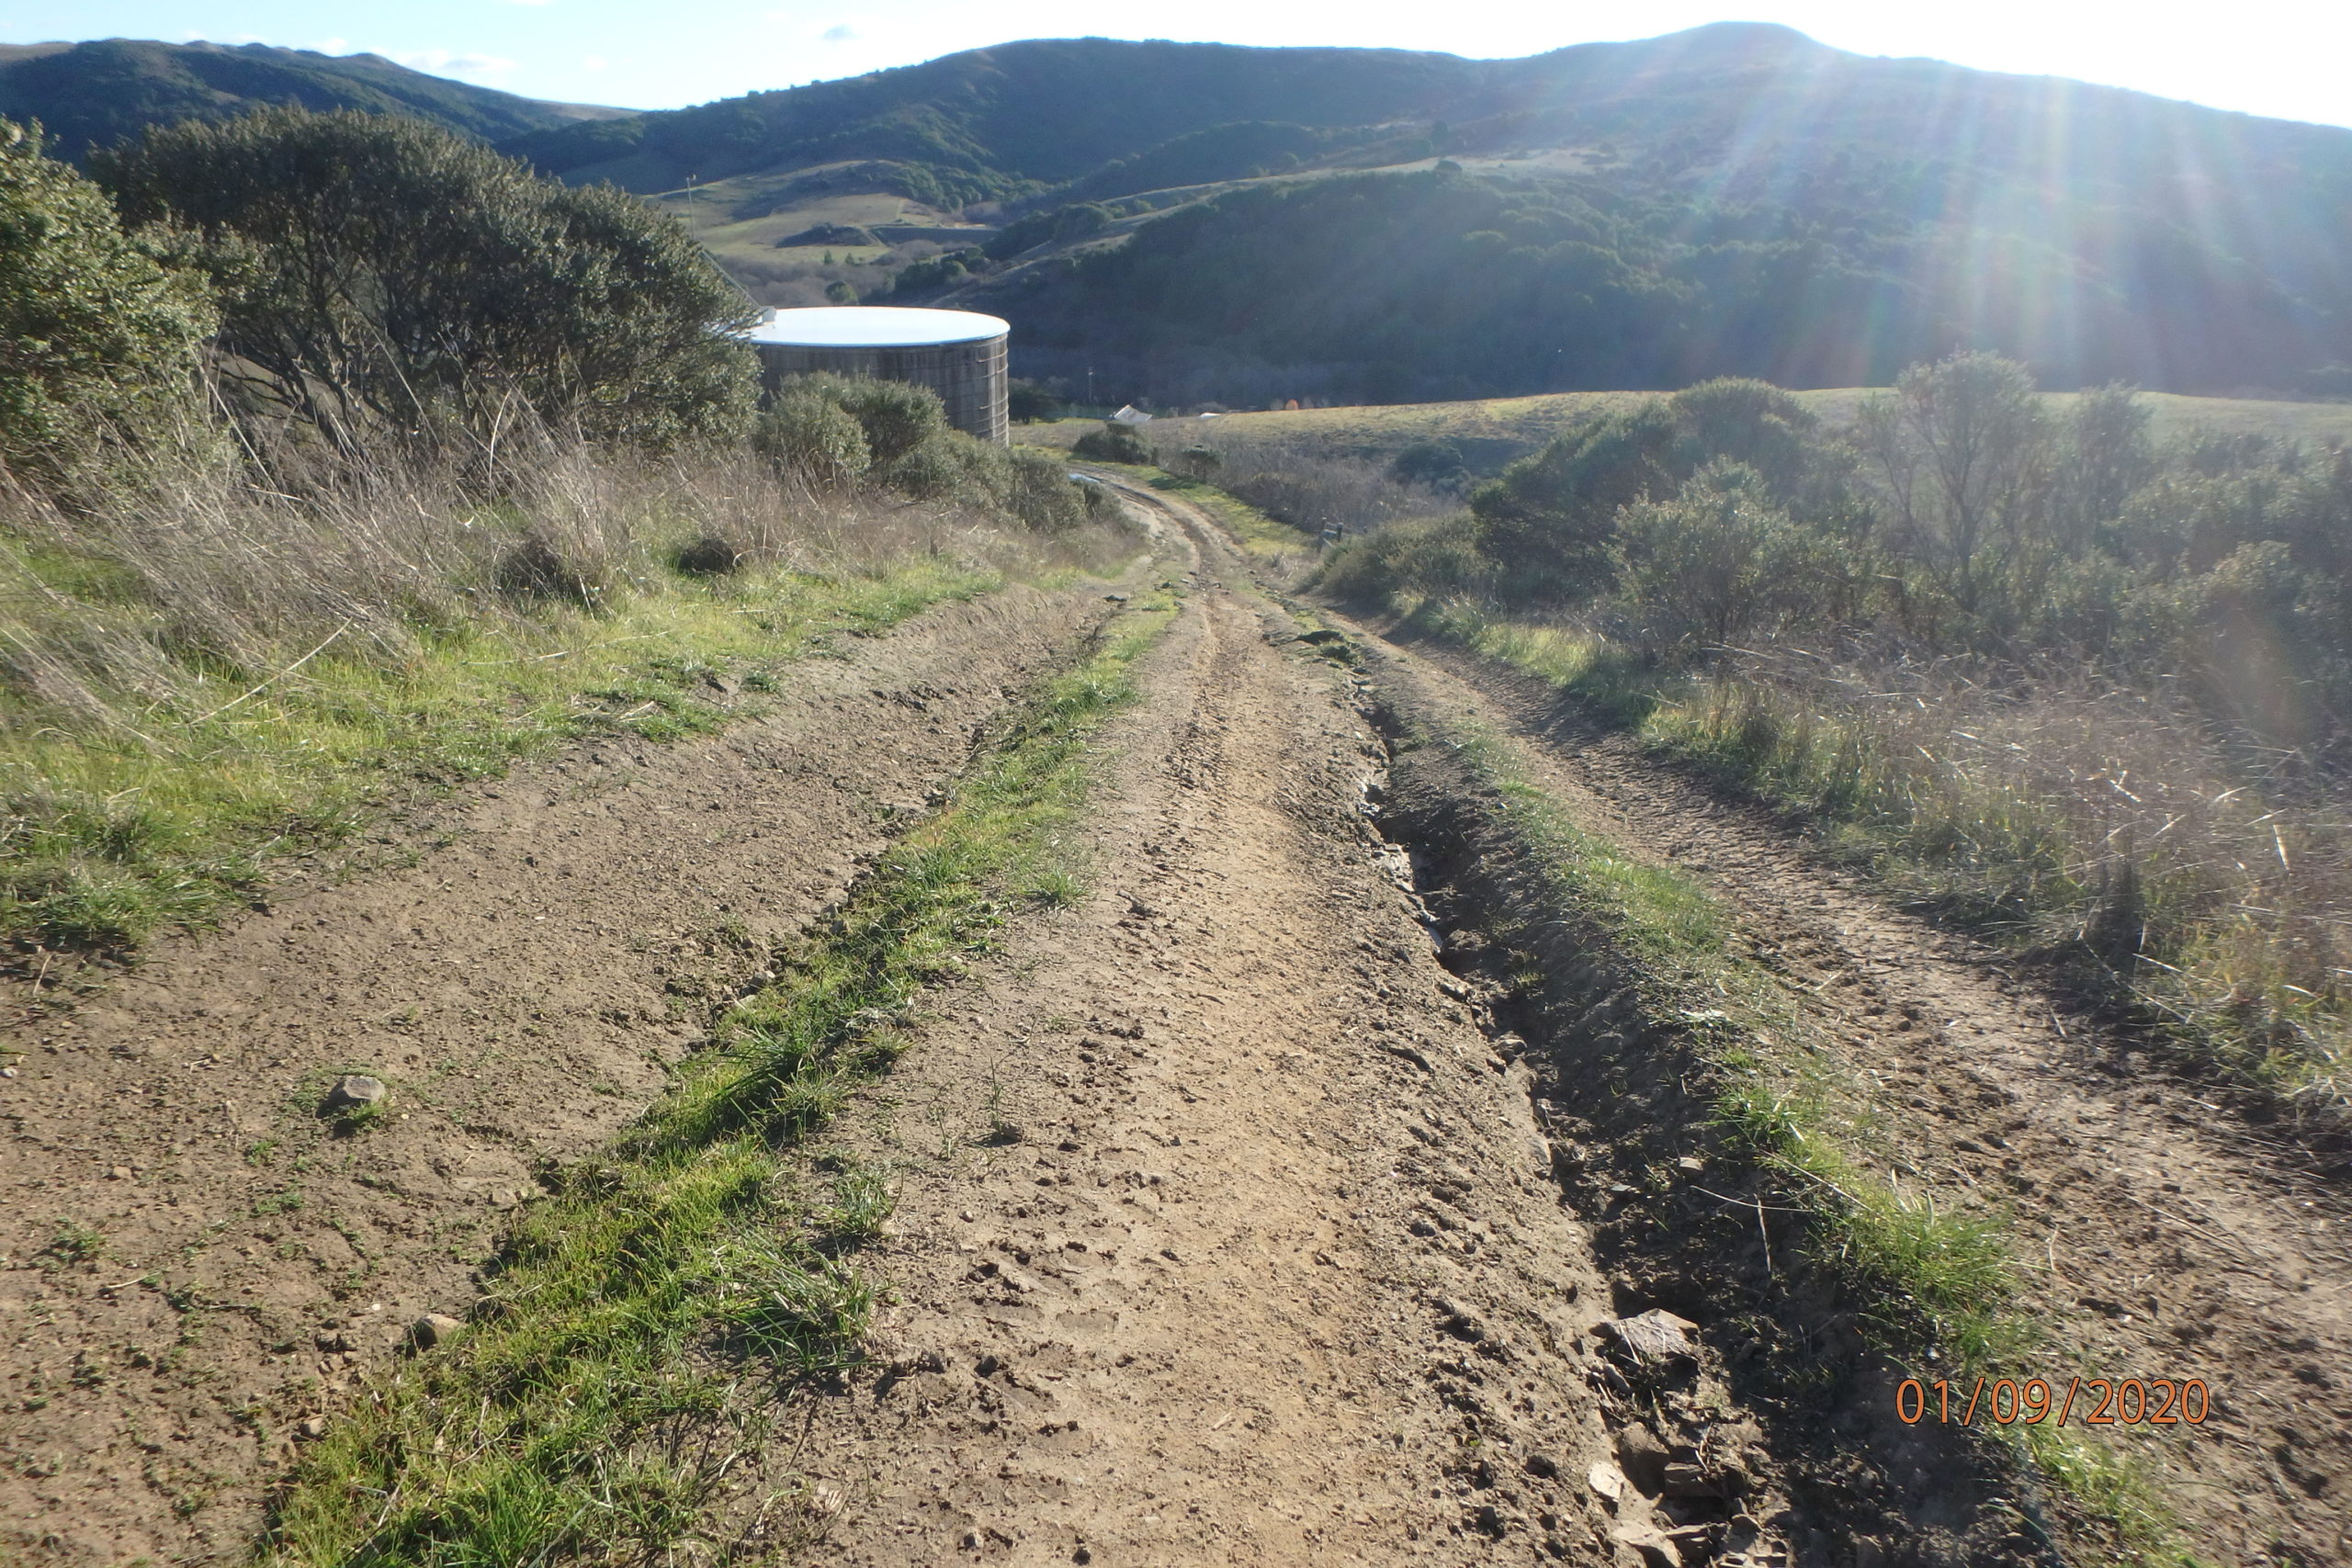 A dirt road down a hill has a deep rut, and an entirely uneven surface.